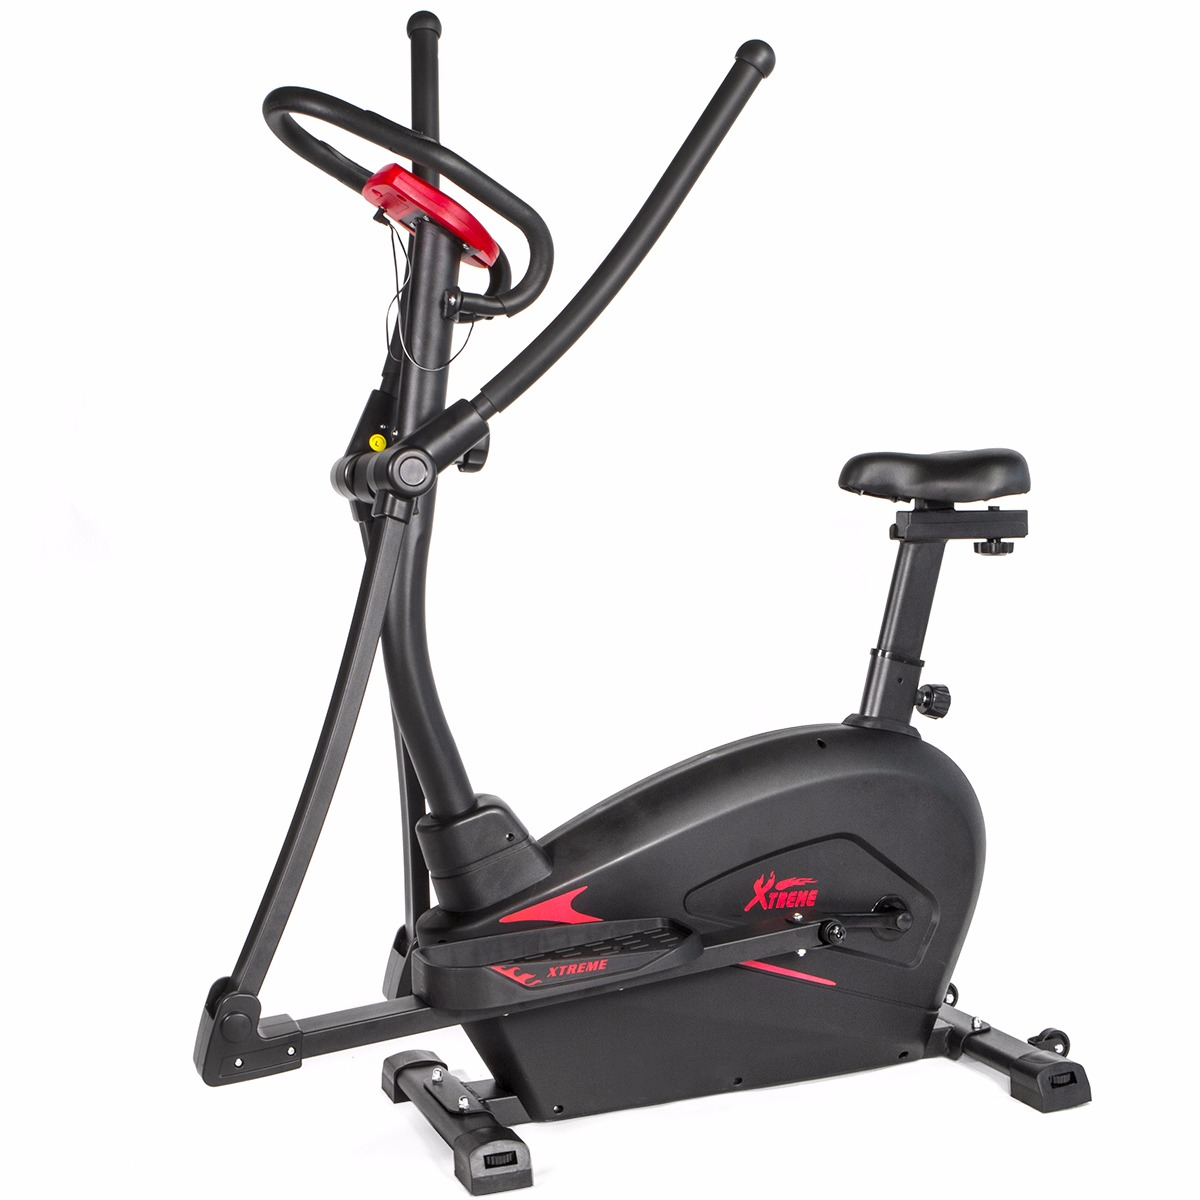 Pro 2in1 Cardio Dual Trainer Elliptical Workout Stationary